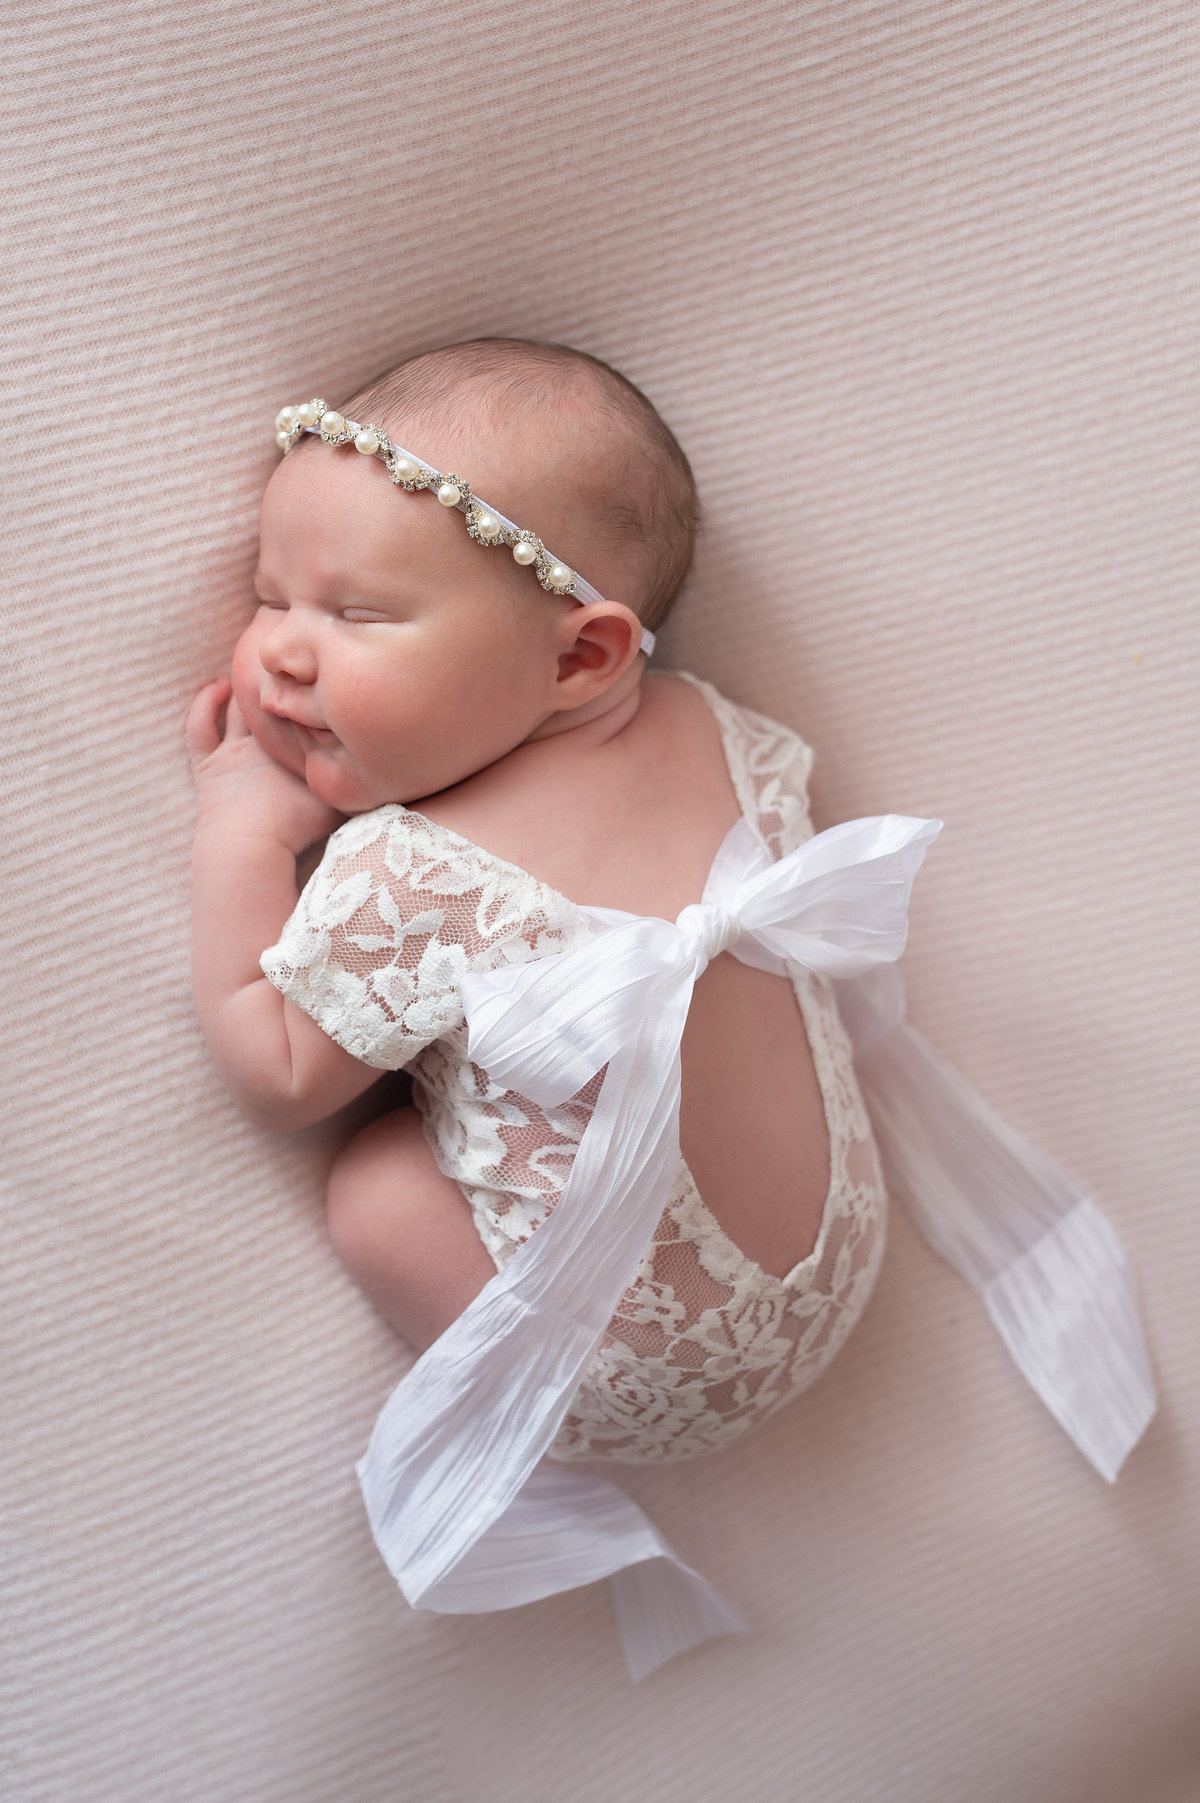 studio newborn session with baby girl in lace romper and headband